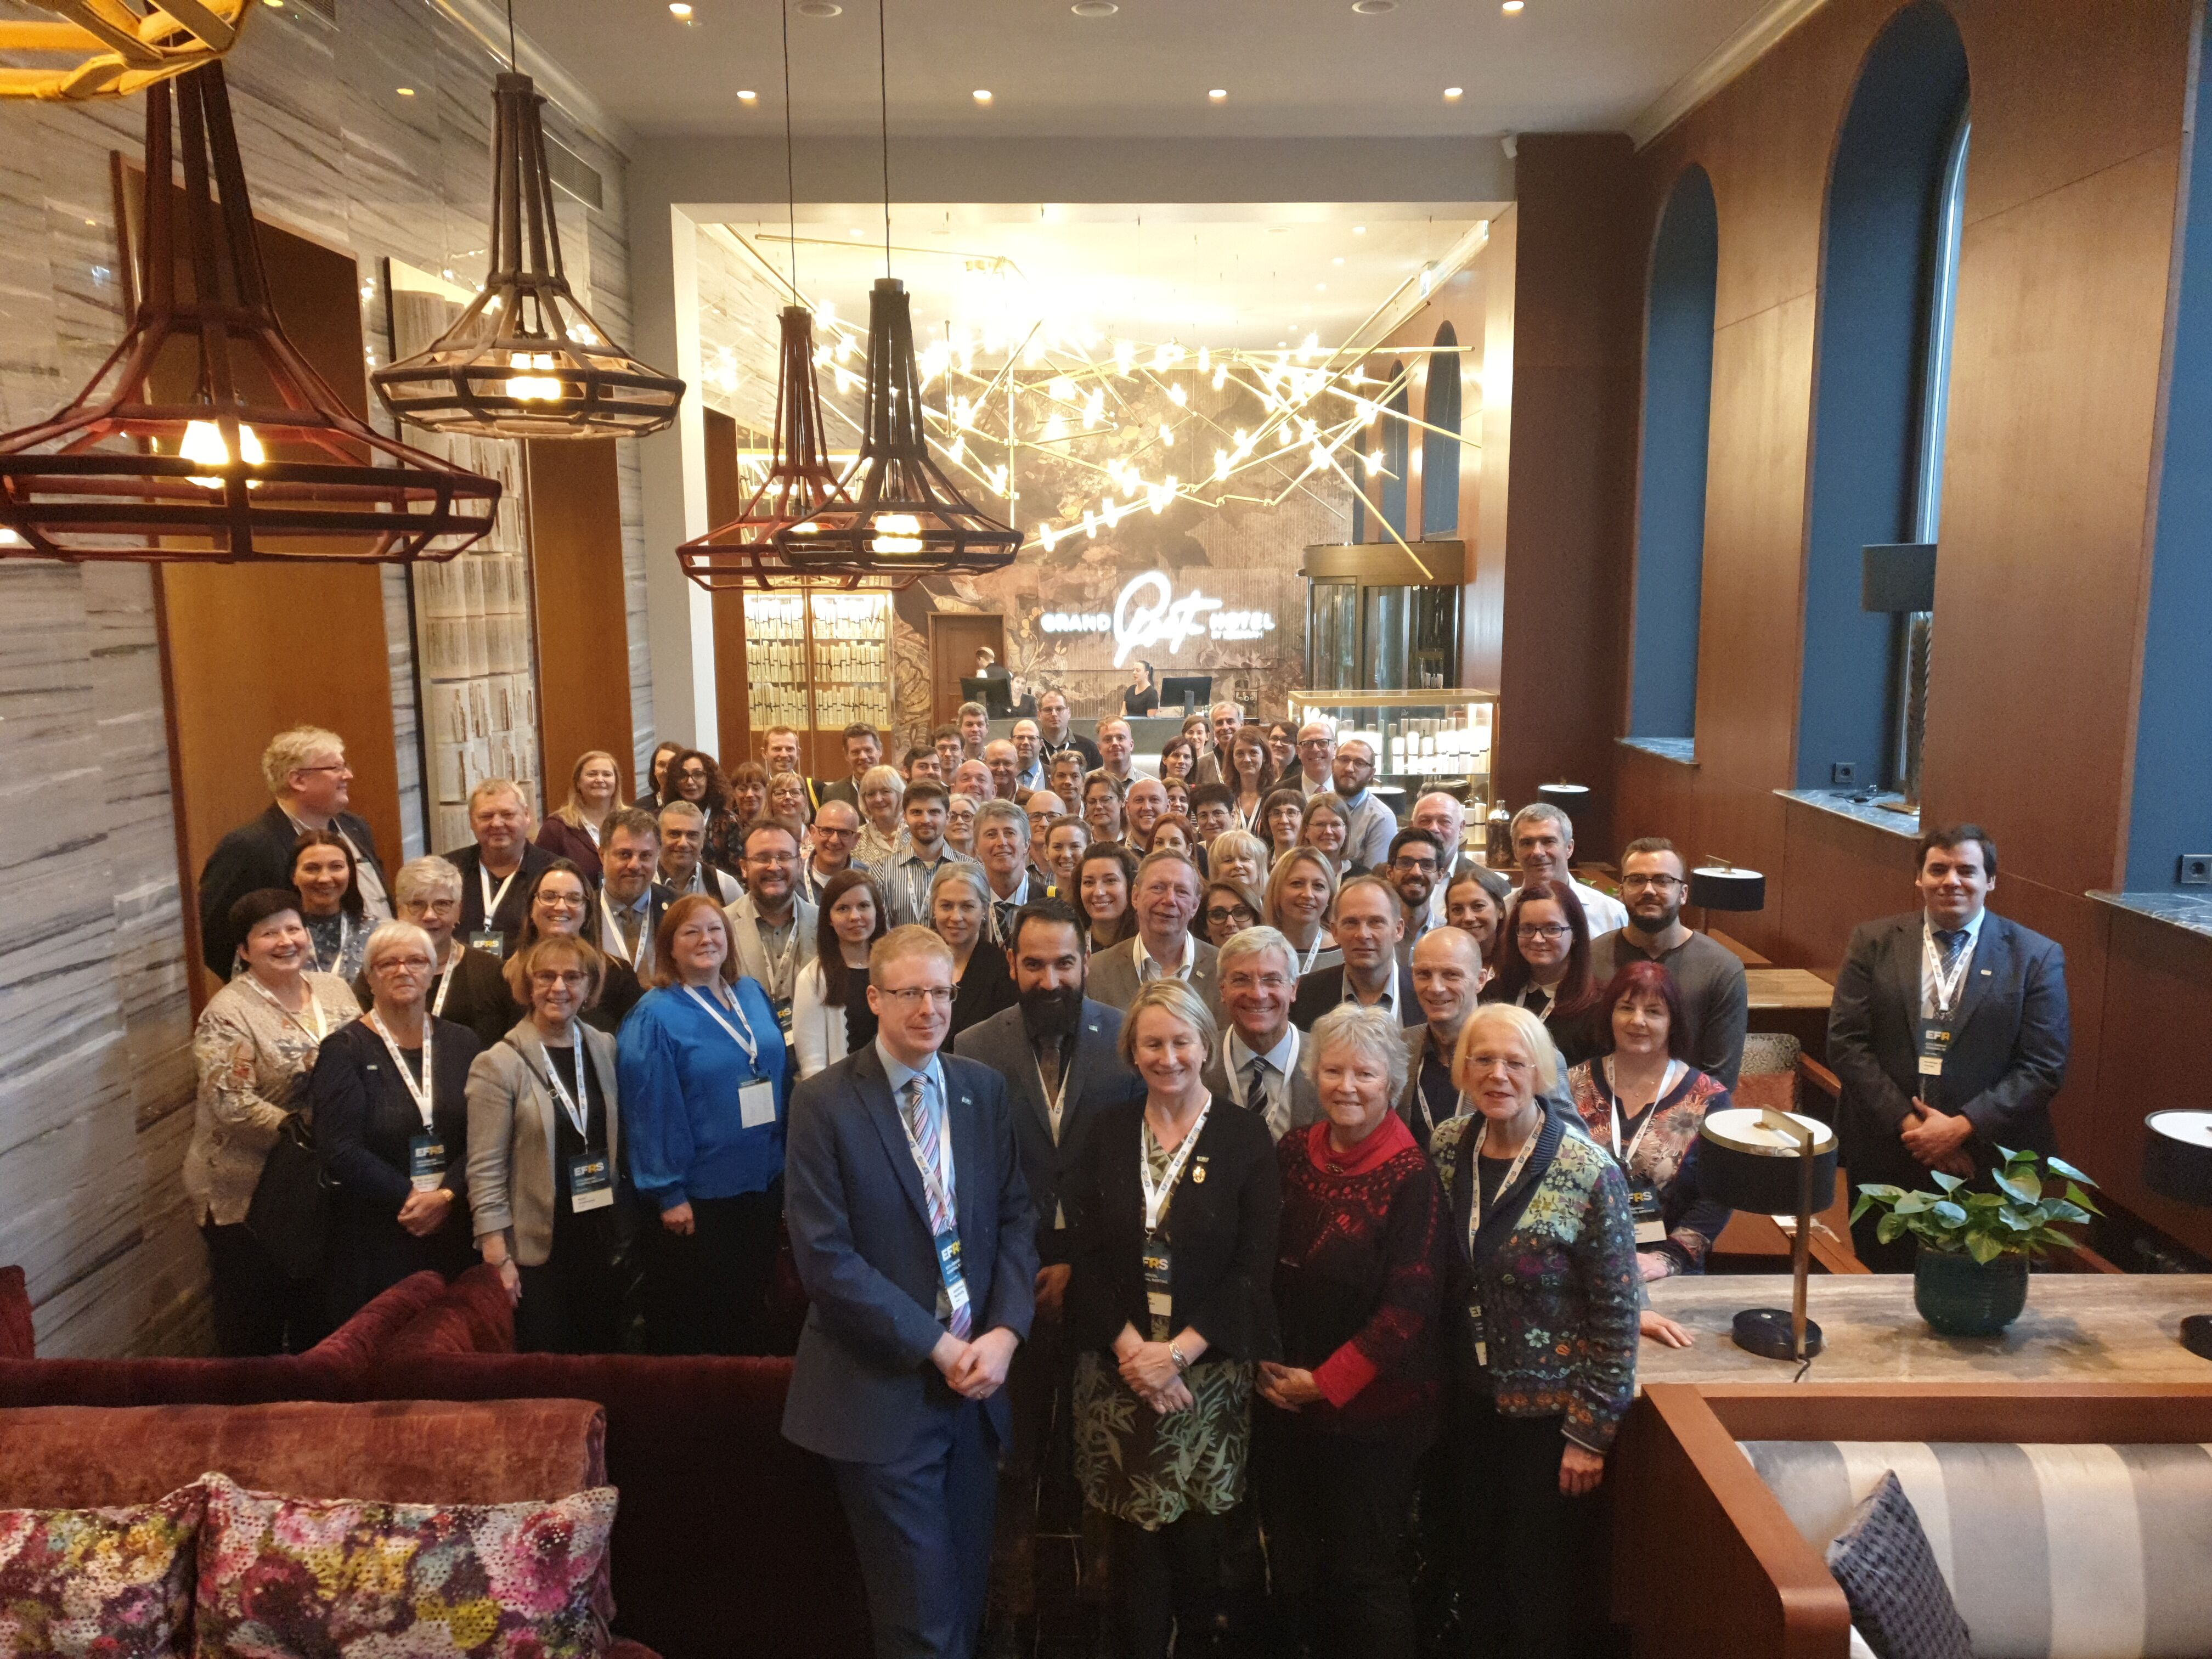 Novetats de l'Annual General Meeting (AGM) del European Federation of Radiographers Society EFRS.